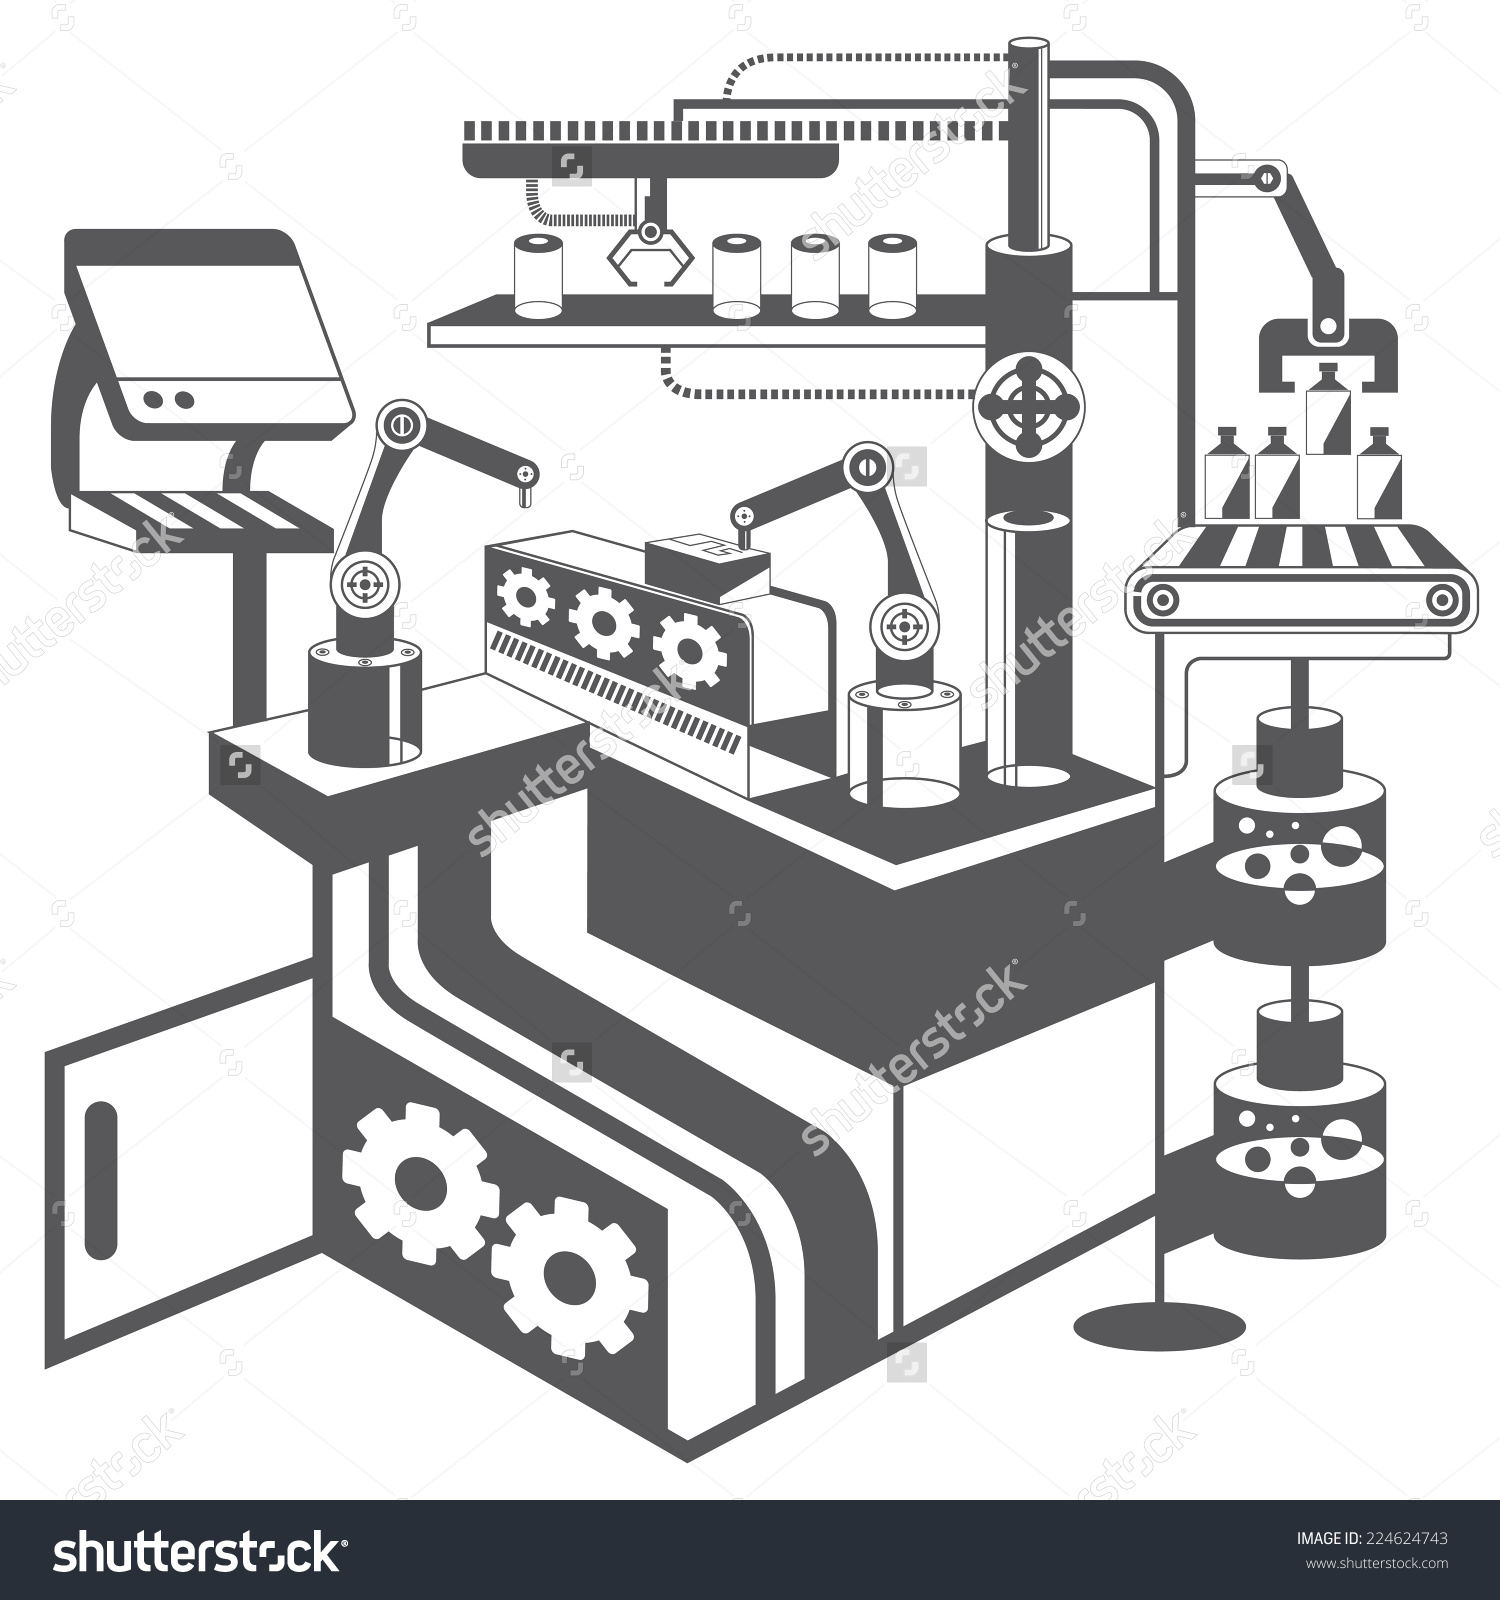 Manufacturing Plant Robotic Arm Automation System Stock Vector.